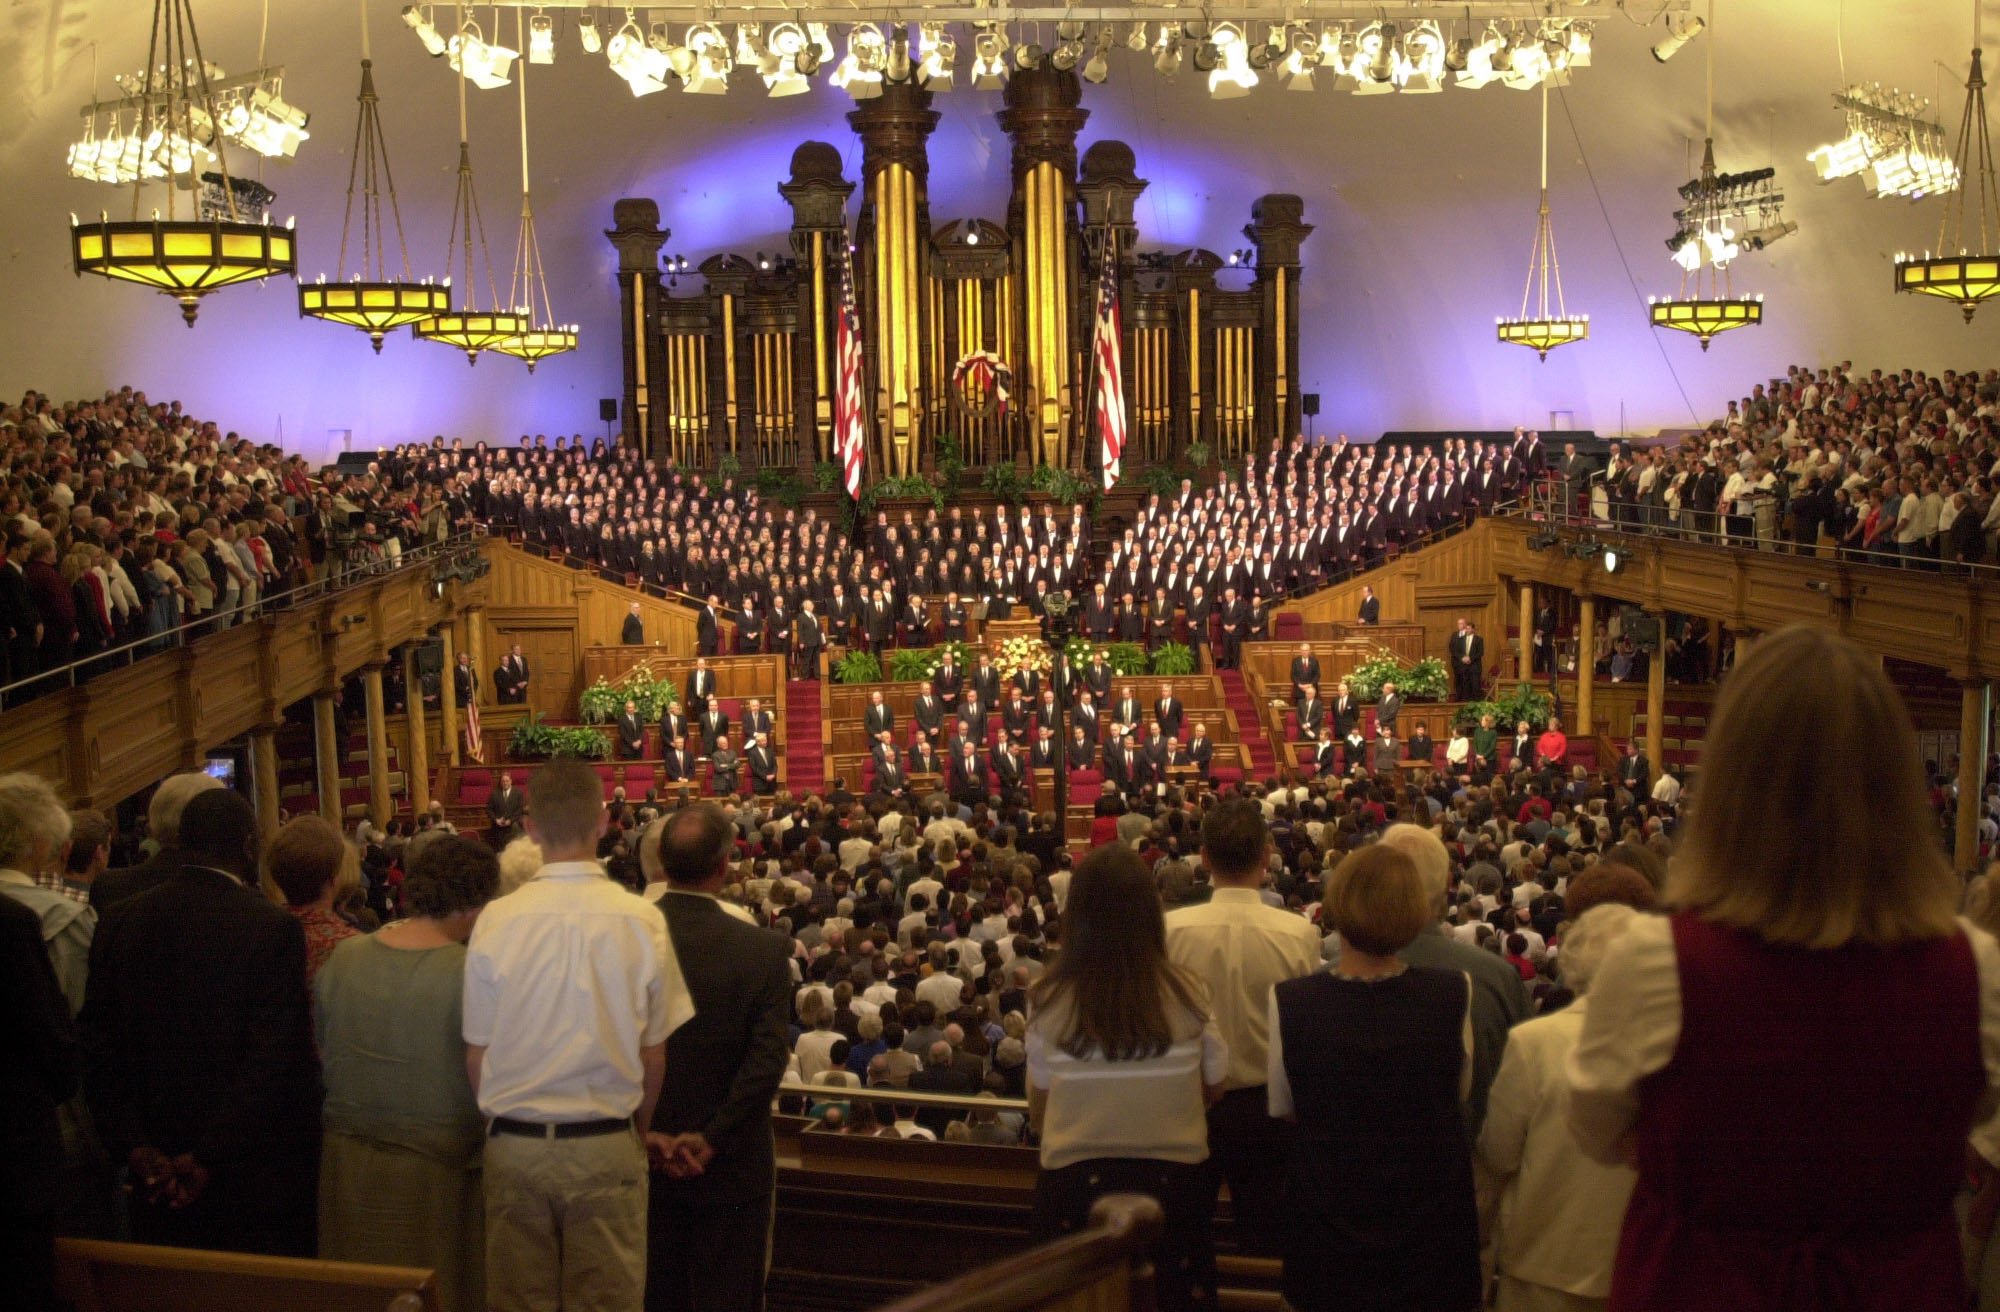 Thousands of people gathered in the Tabernacle on Temple Square for one of two National Day of Prayer services on Sept. 14, 2001. The services memorialized those killed in terrorist attacks on Sept. 11, and featured prayers for comfort and healing.